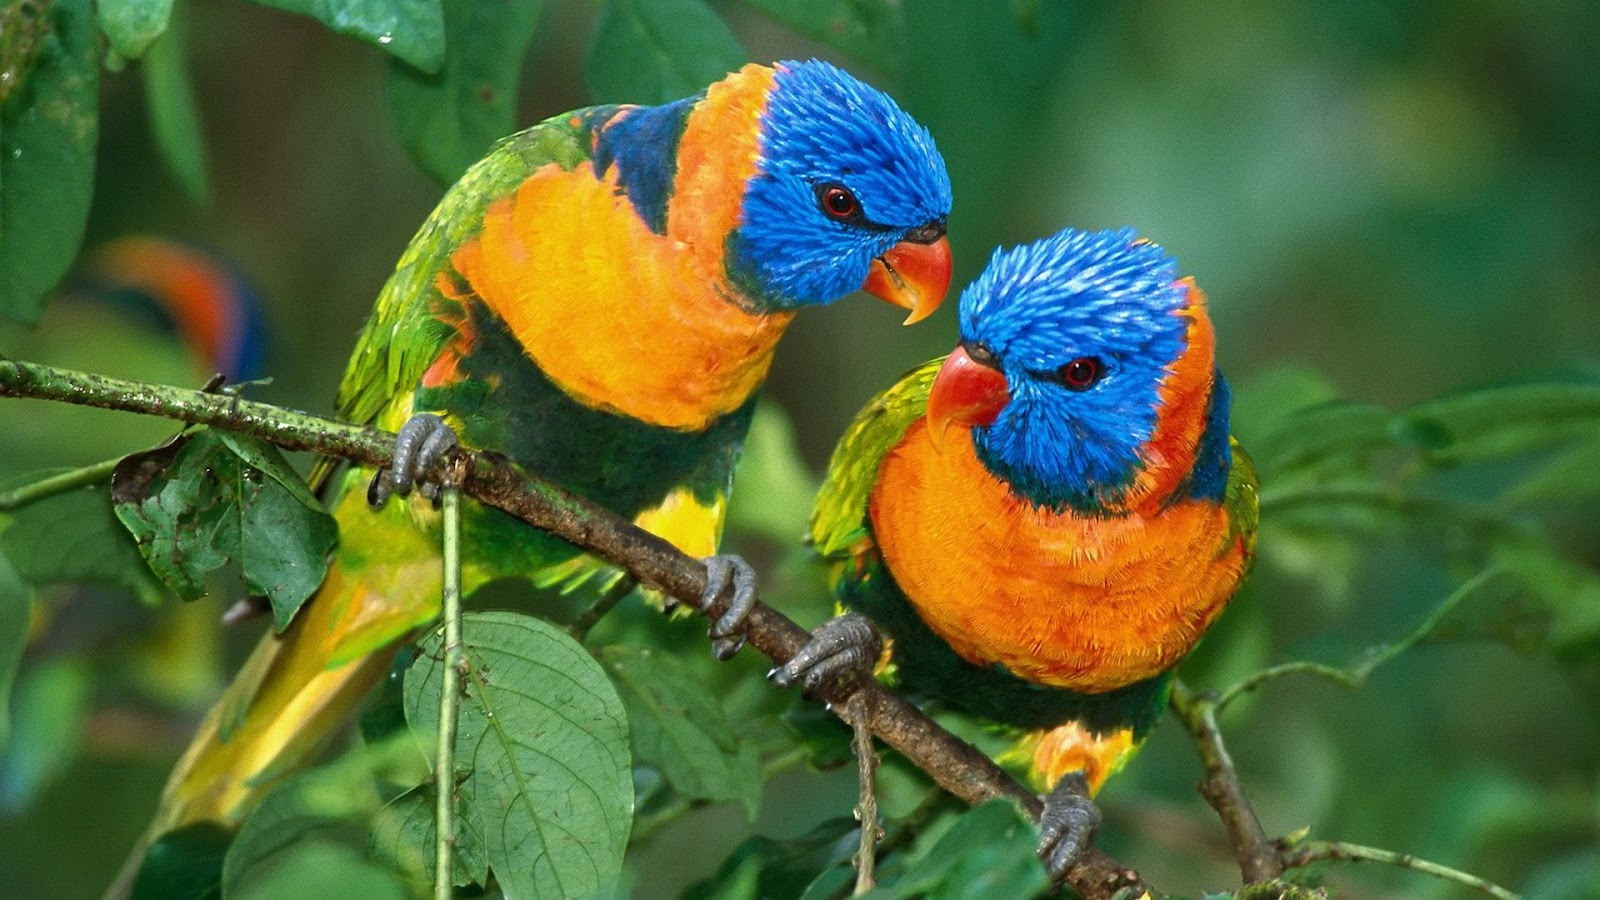 All Wallpapers Parrot Hd Wallpapers 2 1600x900